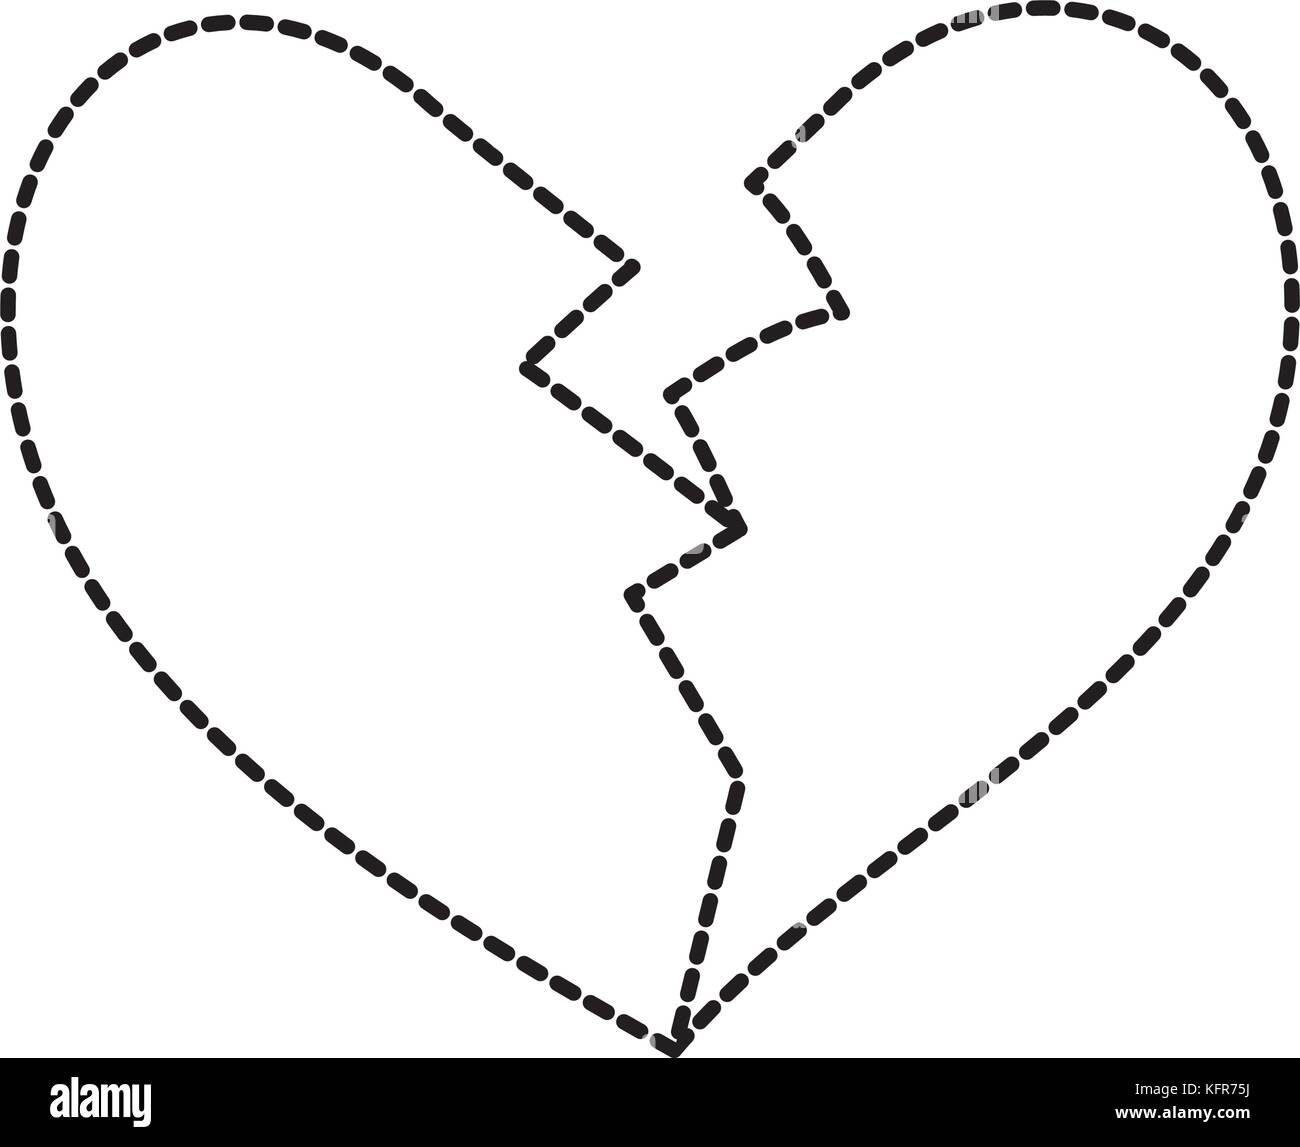 Broken heart black and white stock photos images alamy broken heart icon divorce end of love symbol stock image biocorpaavc Images